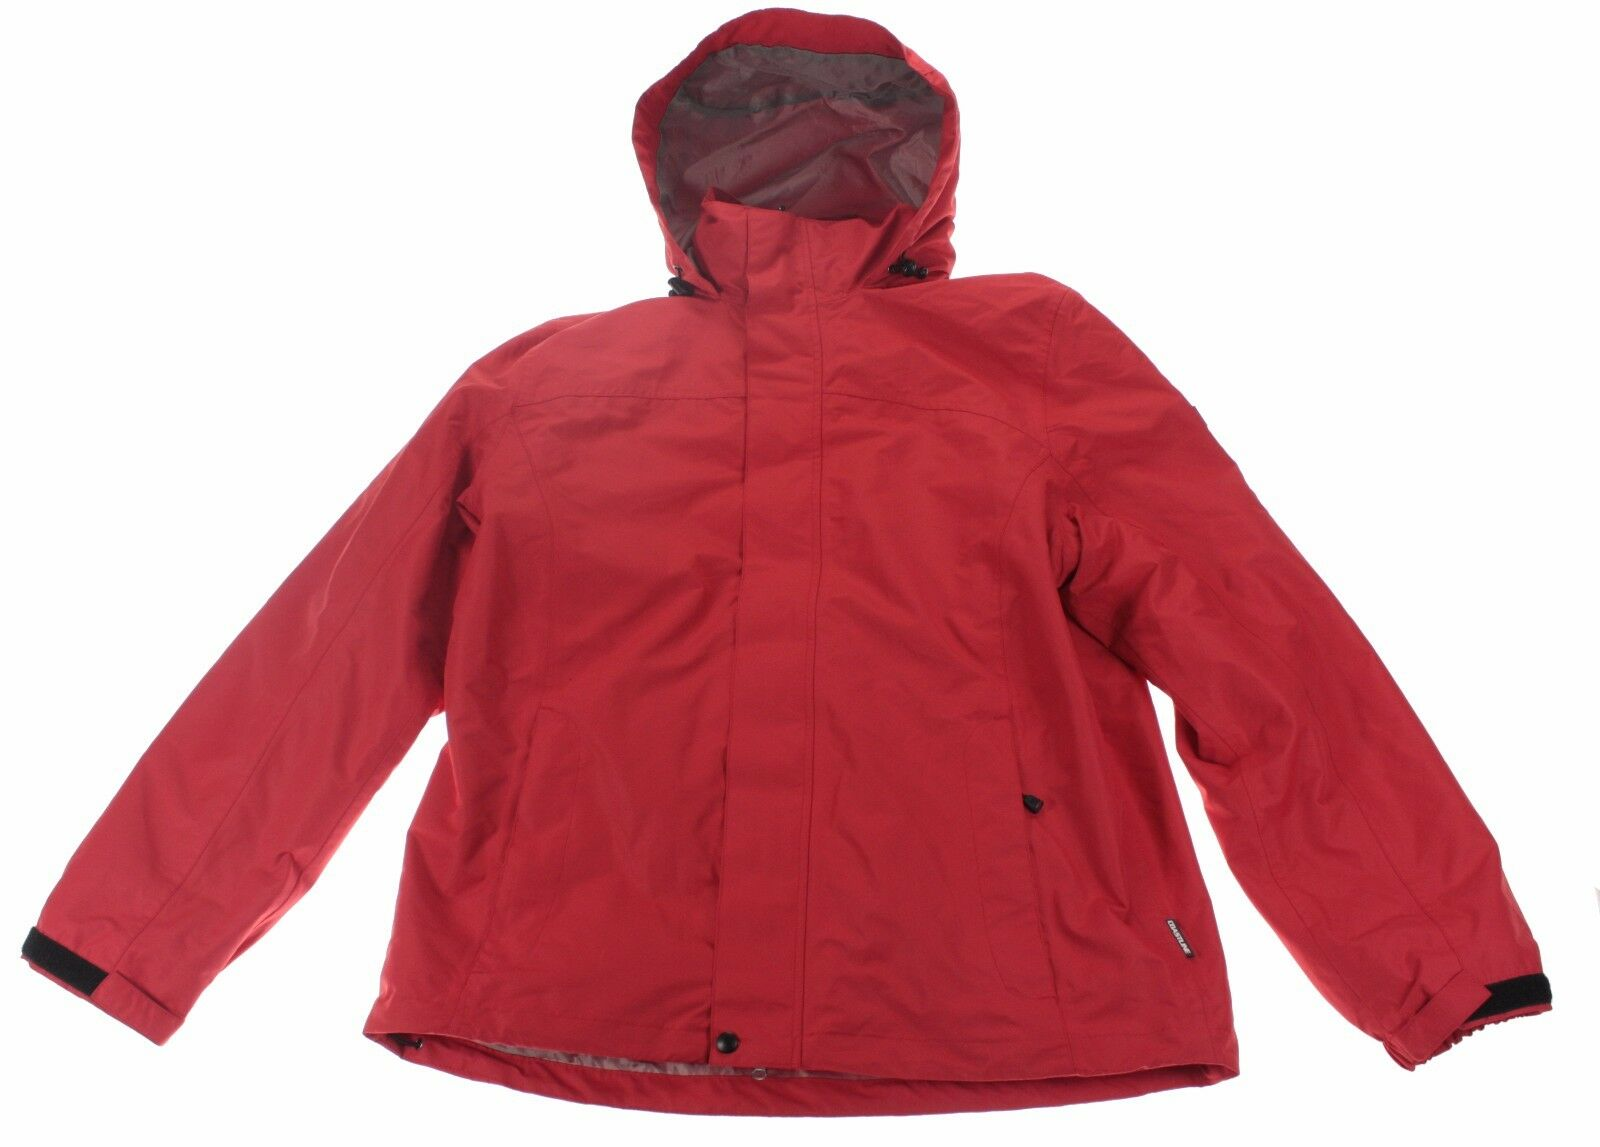 Taille Veste Rouge Homme Coastline F046cf In1 2 Neuf L RvnwYP